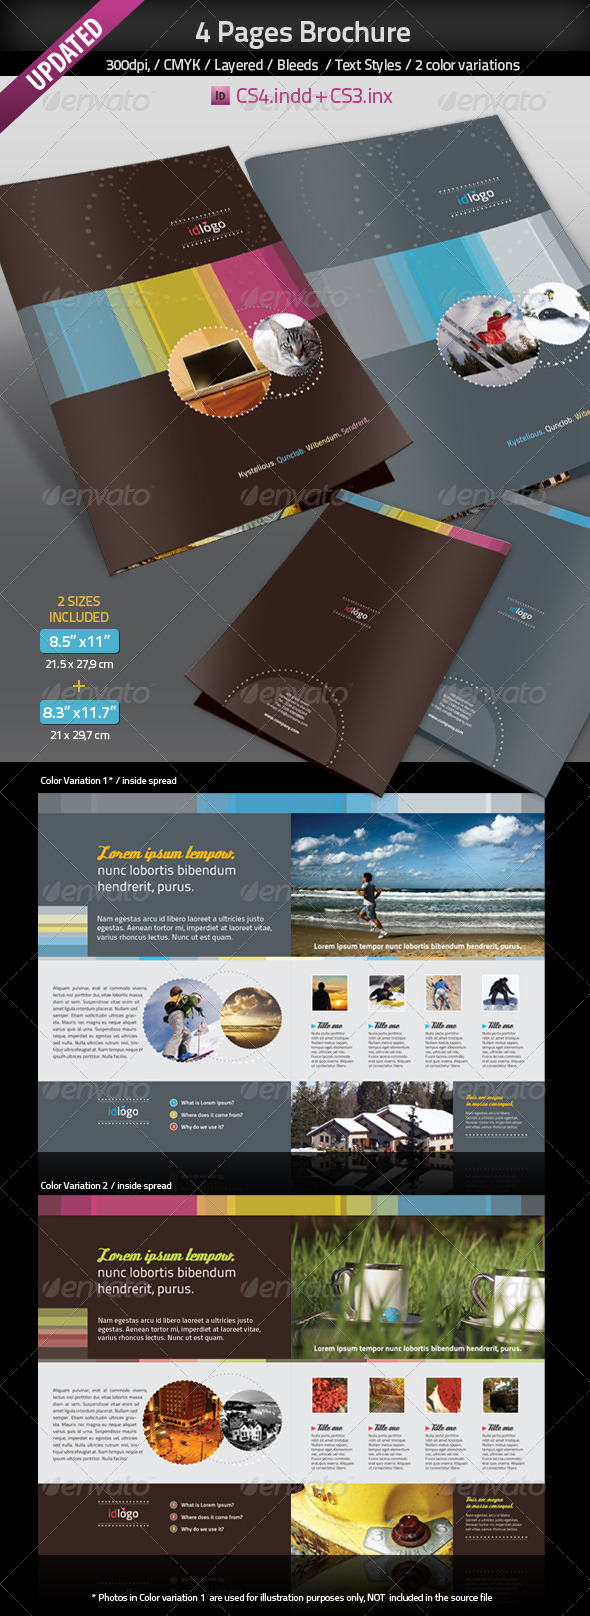 Permalink to free indesign flyer templates